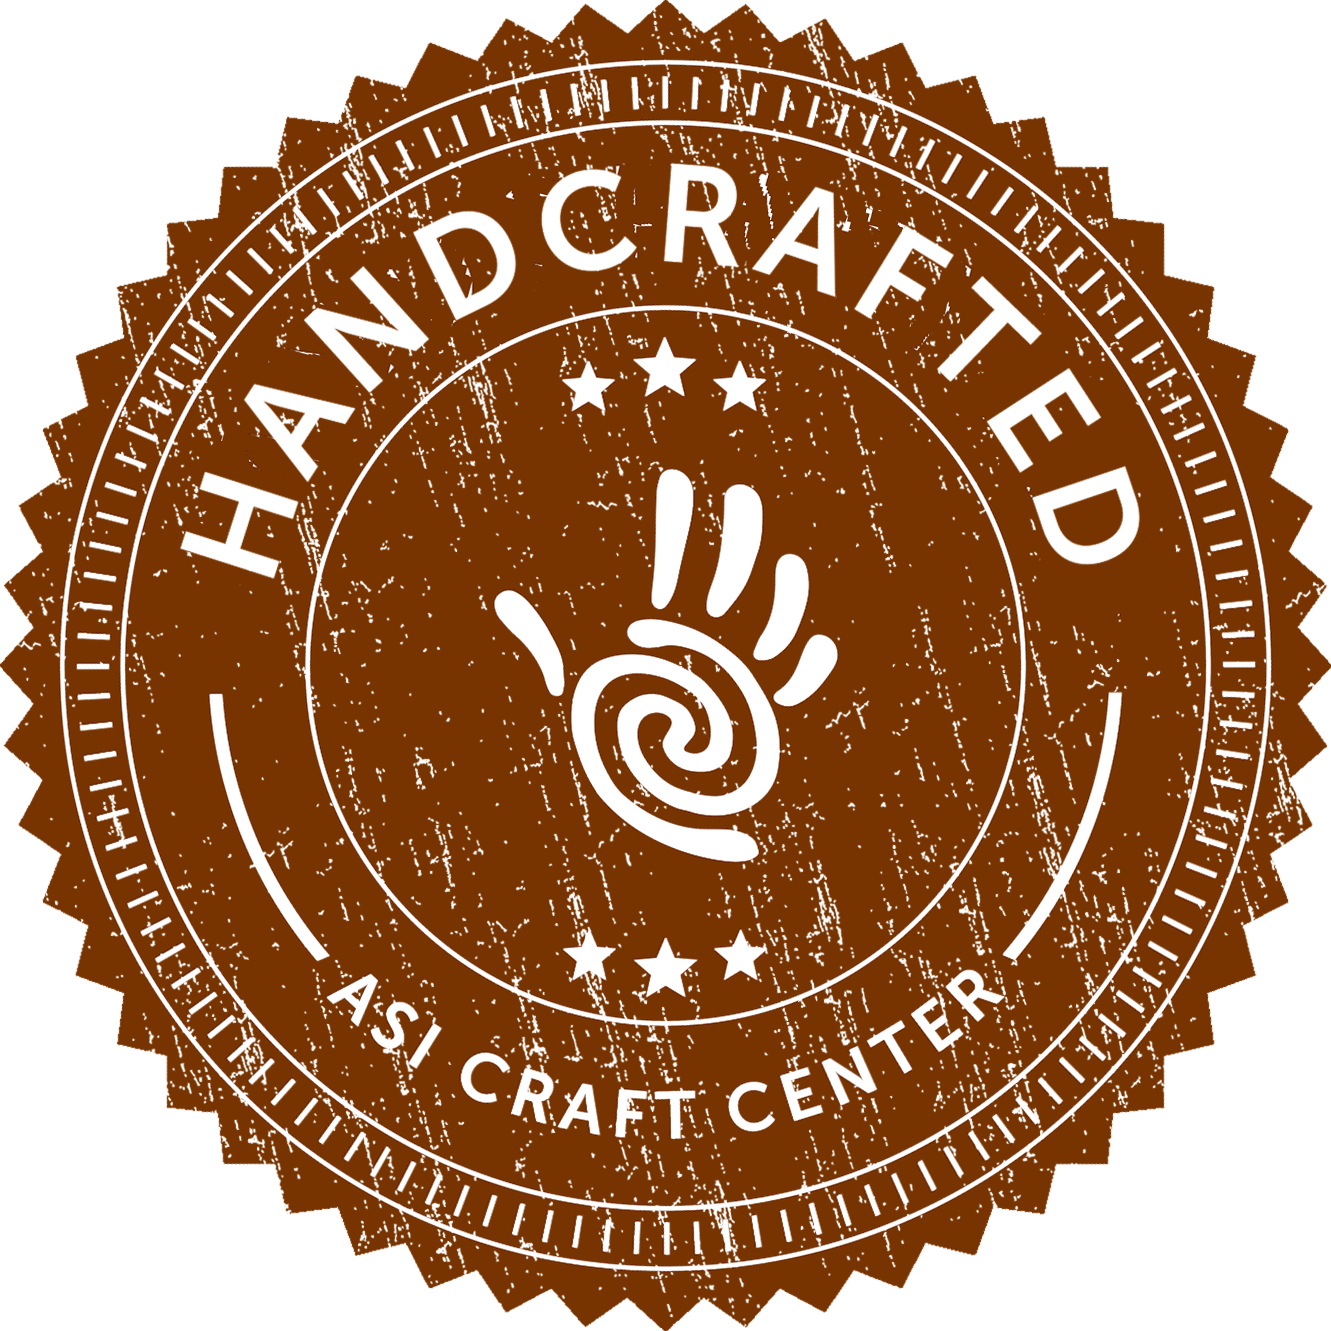 handcrafted asi craft center badge